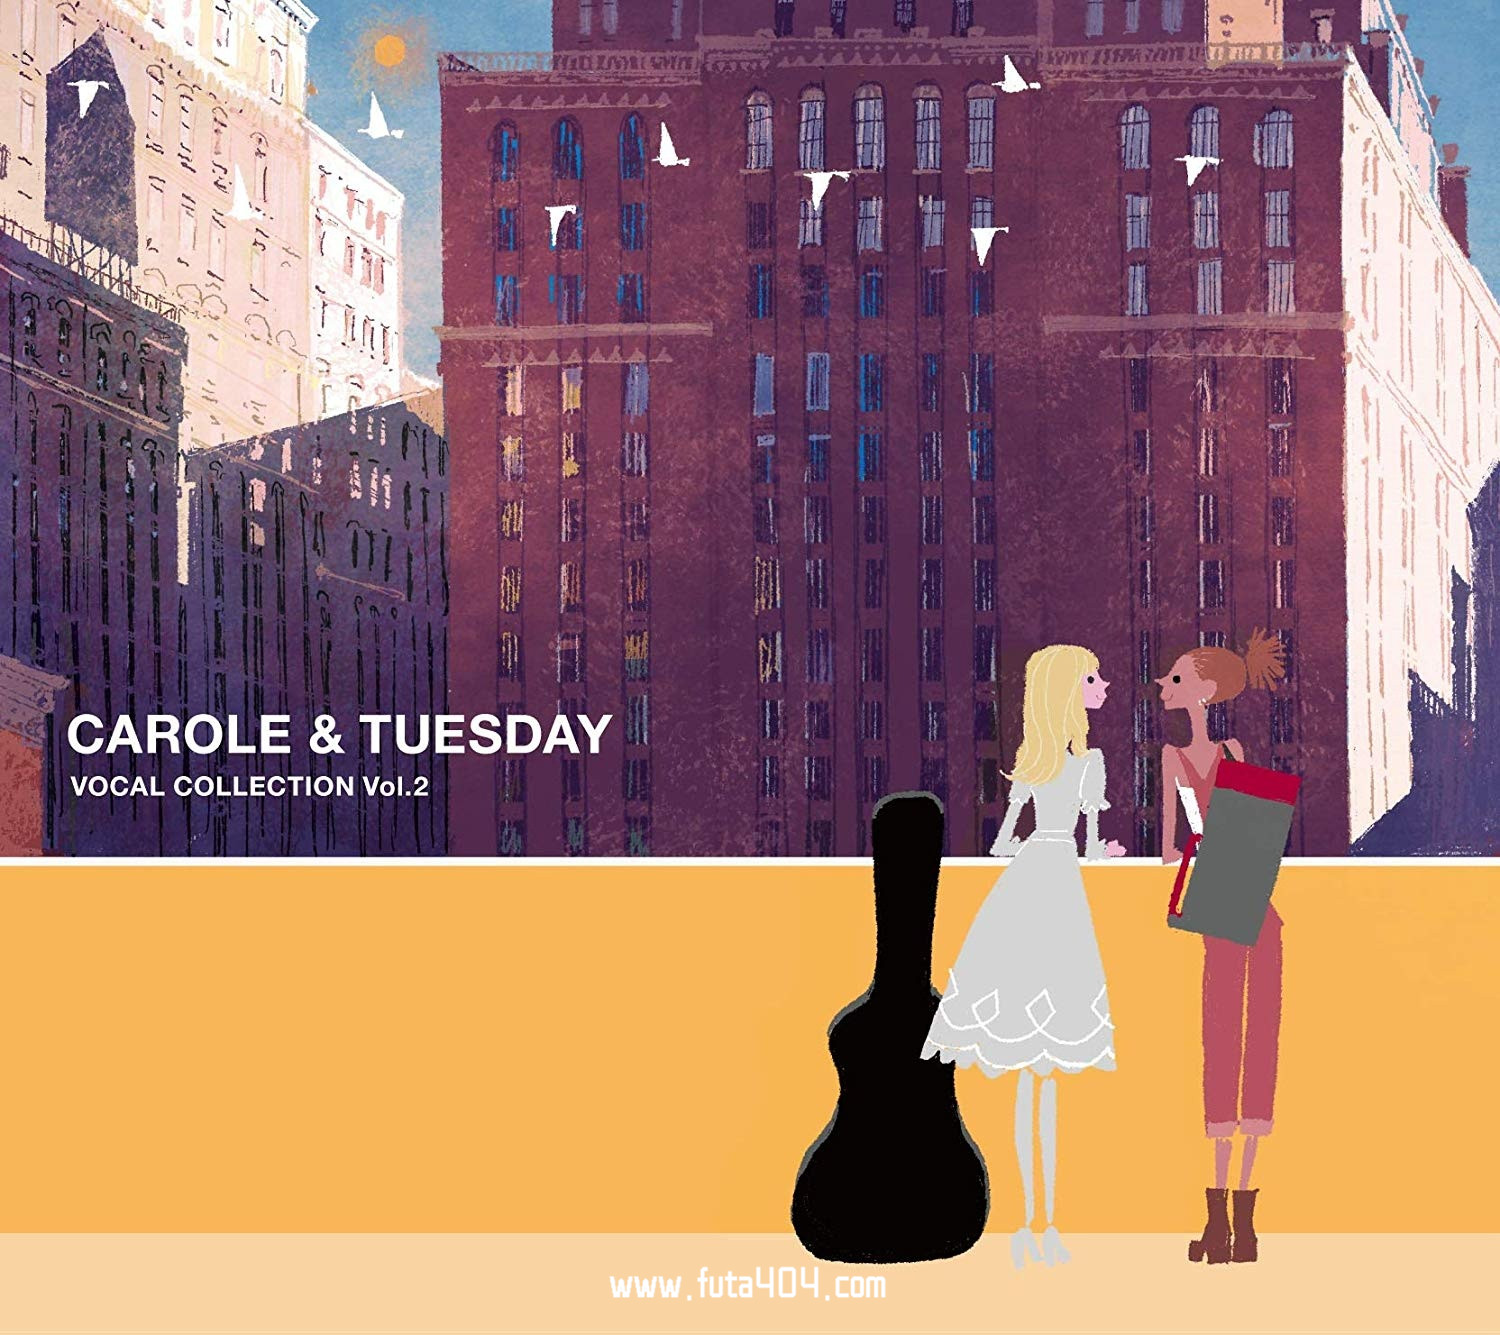 Carole&Tuesday歌曲集vol.2下载(Carole&Tuesday动画插入歌) CAROLE&TUESDAY 动漫音乐 第1张